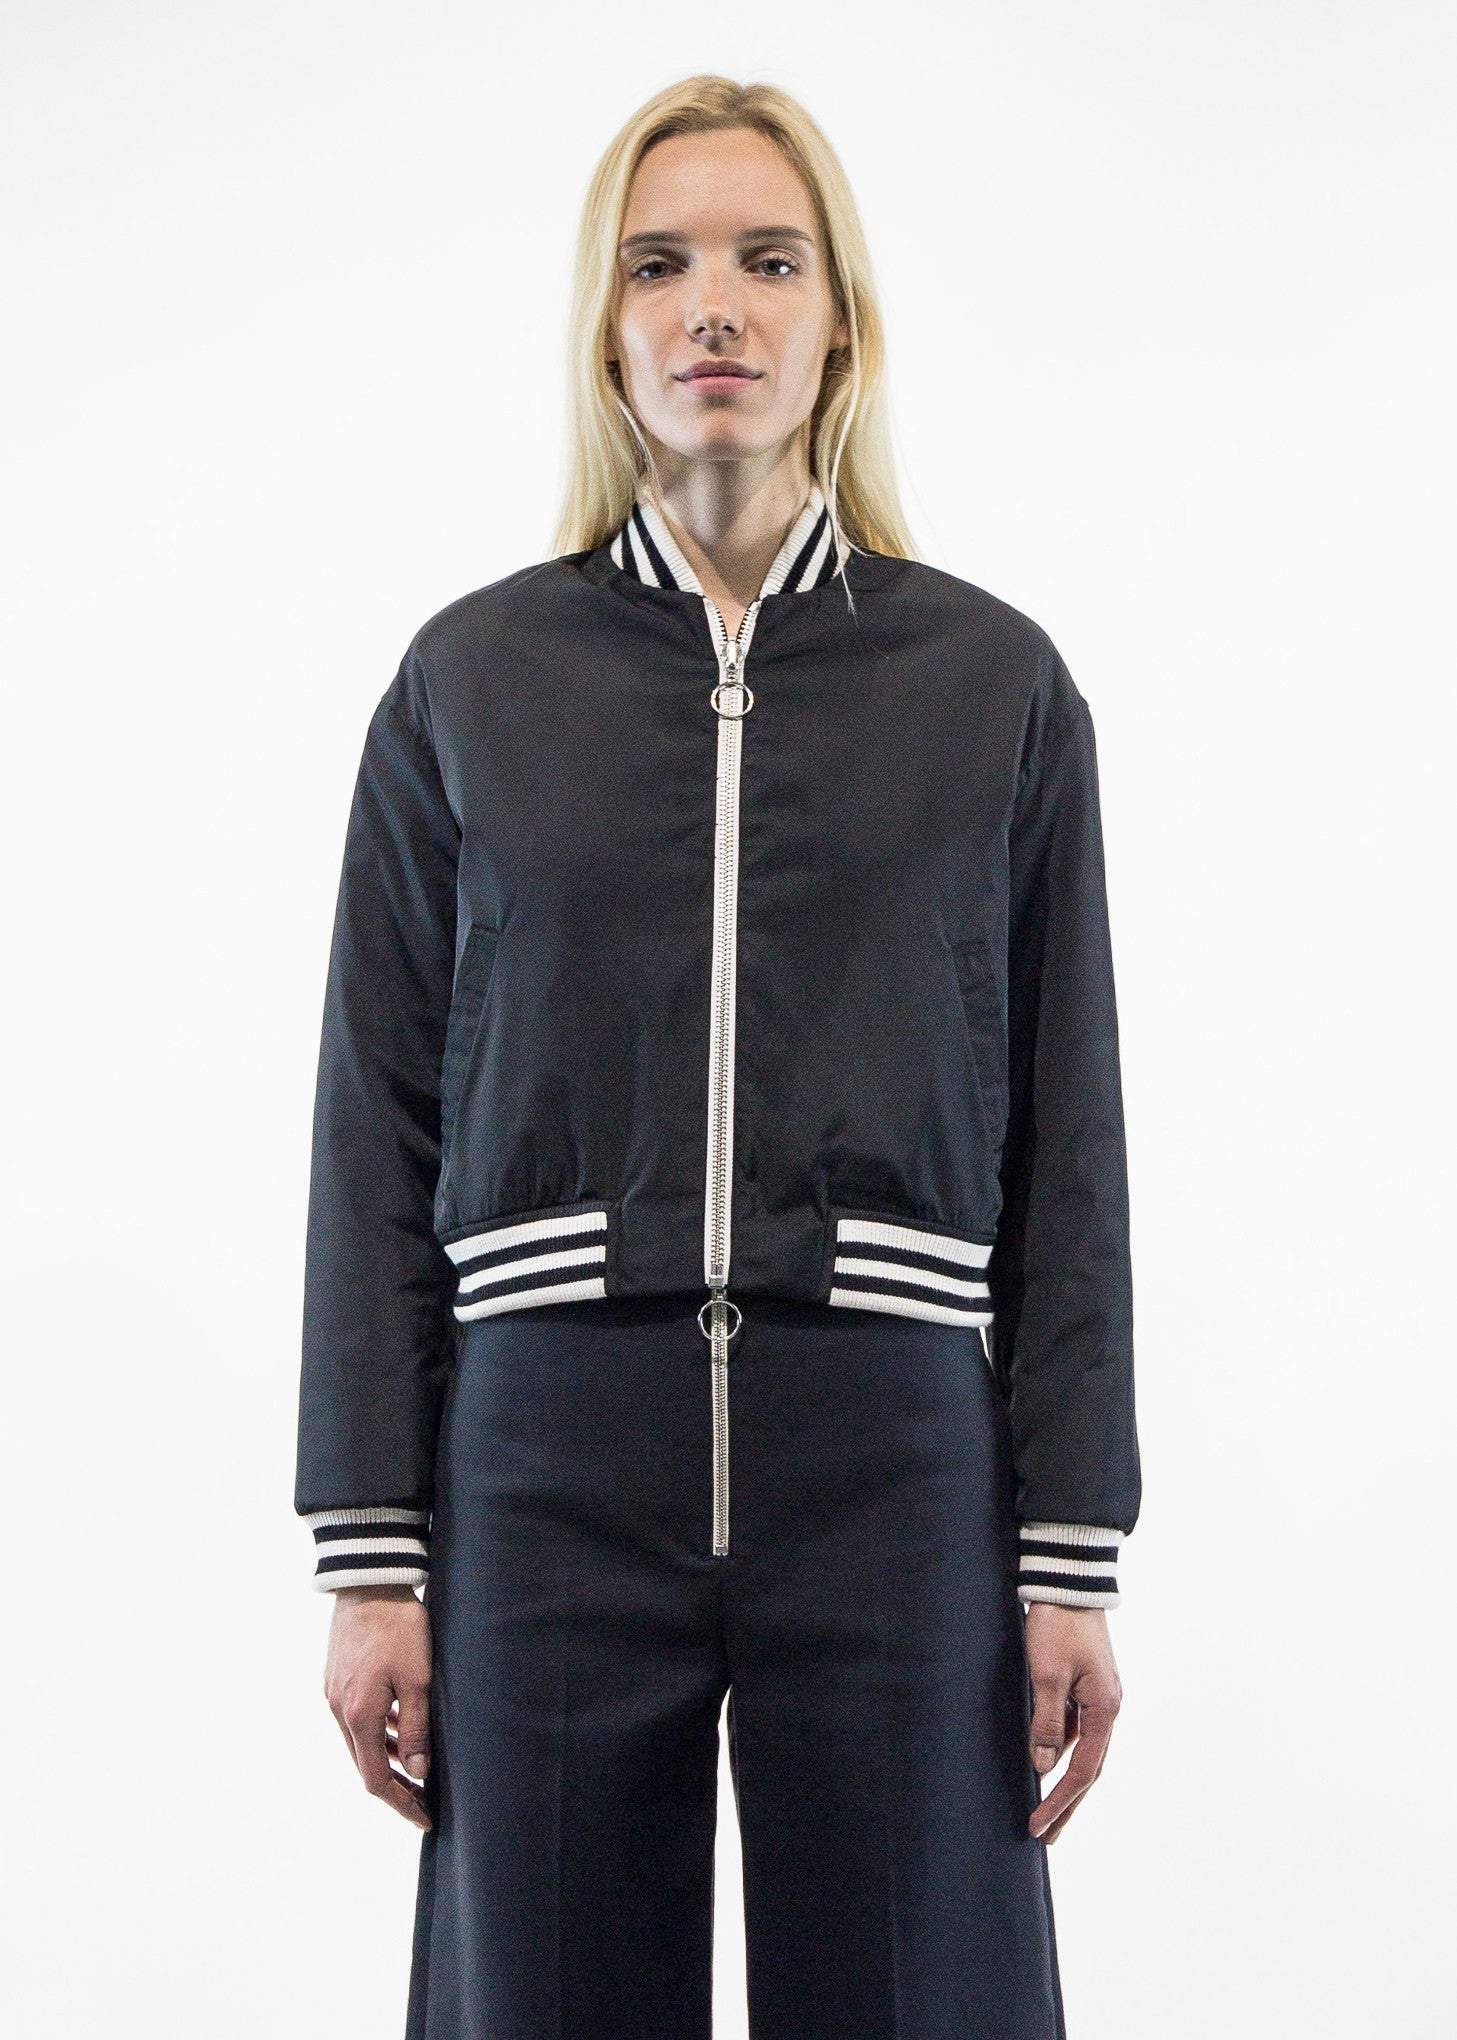 Melodie Constrast Bomber Jacket